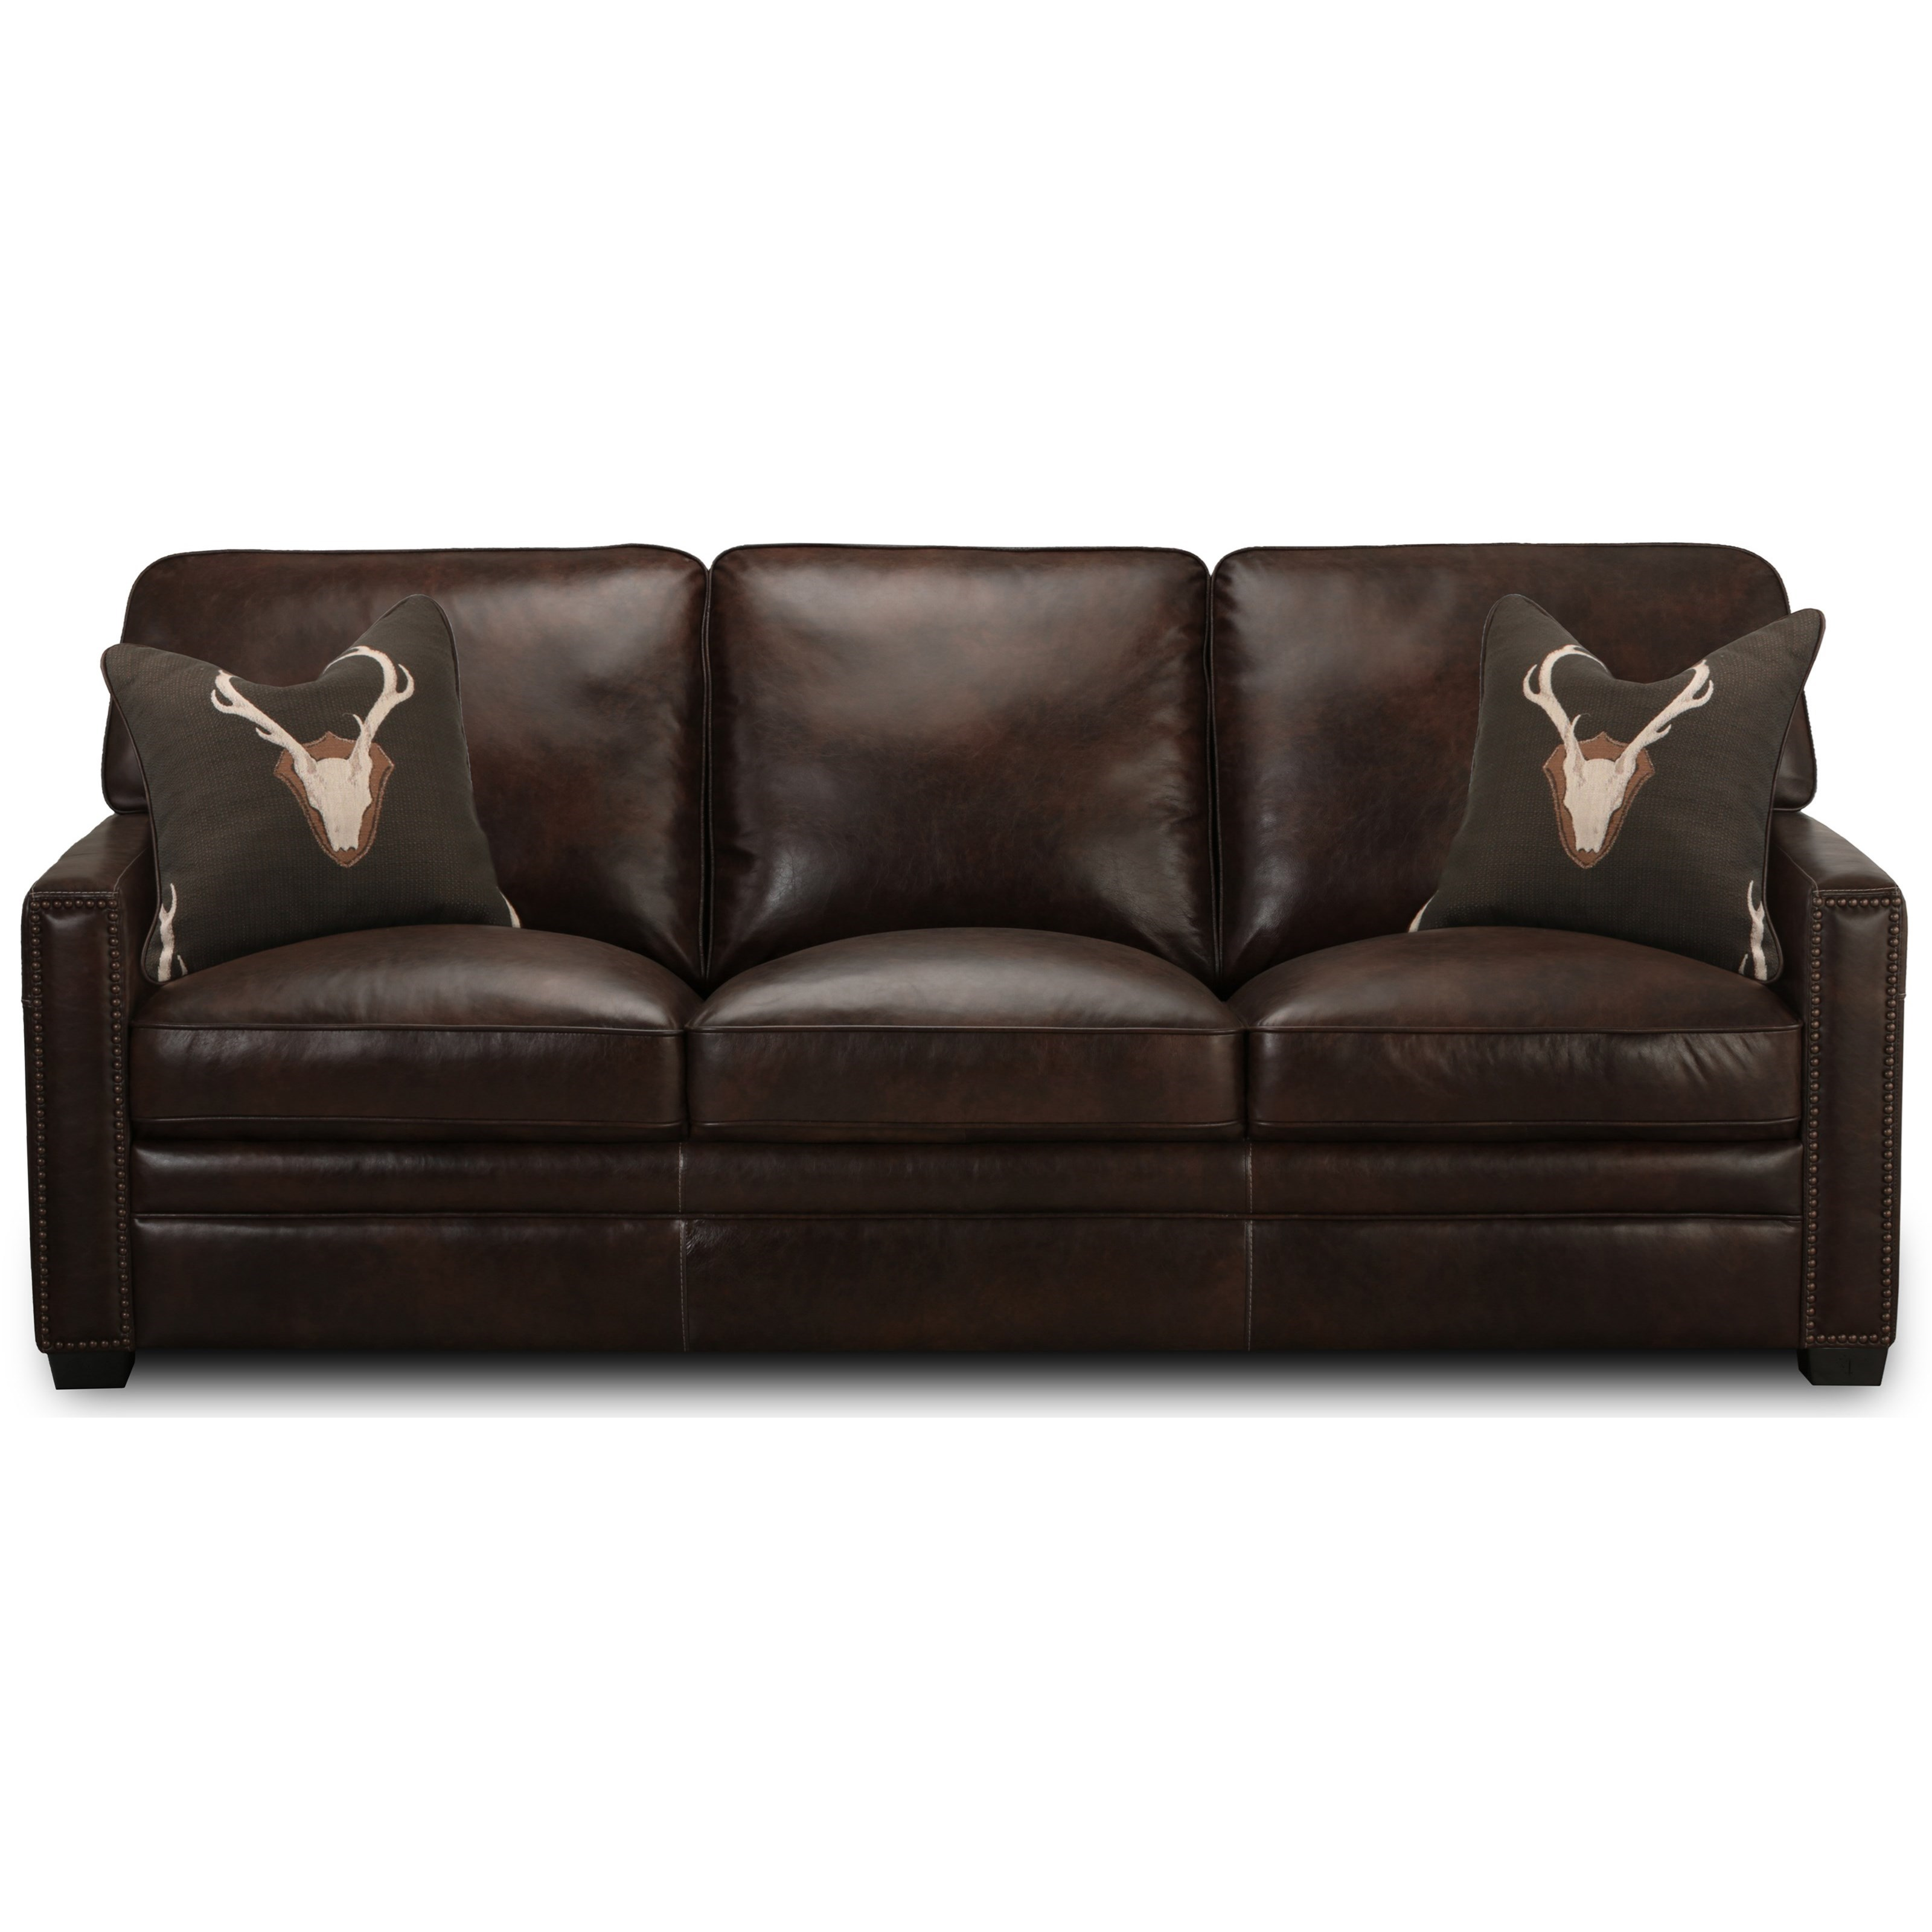 Simon Li J452 Leather Sofa With Nailheads Howell